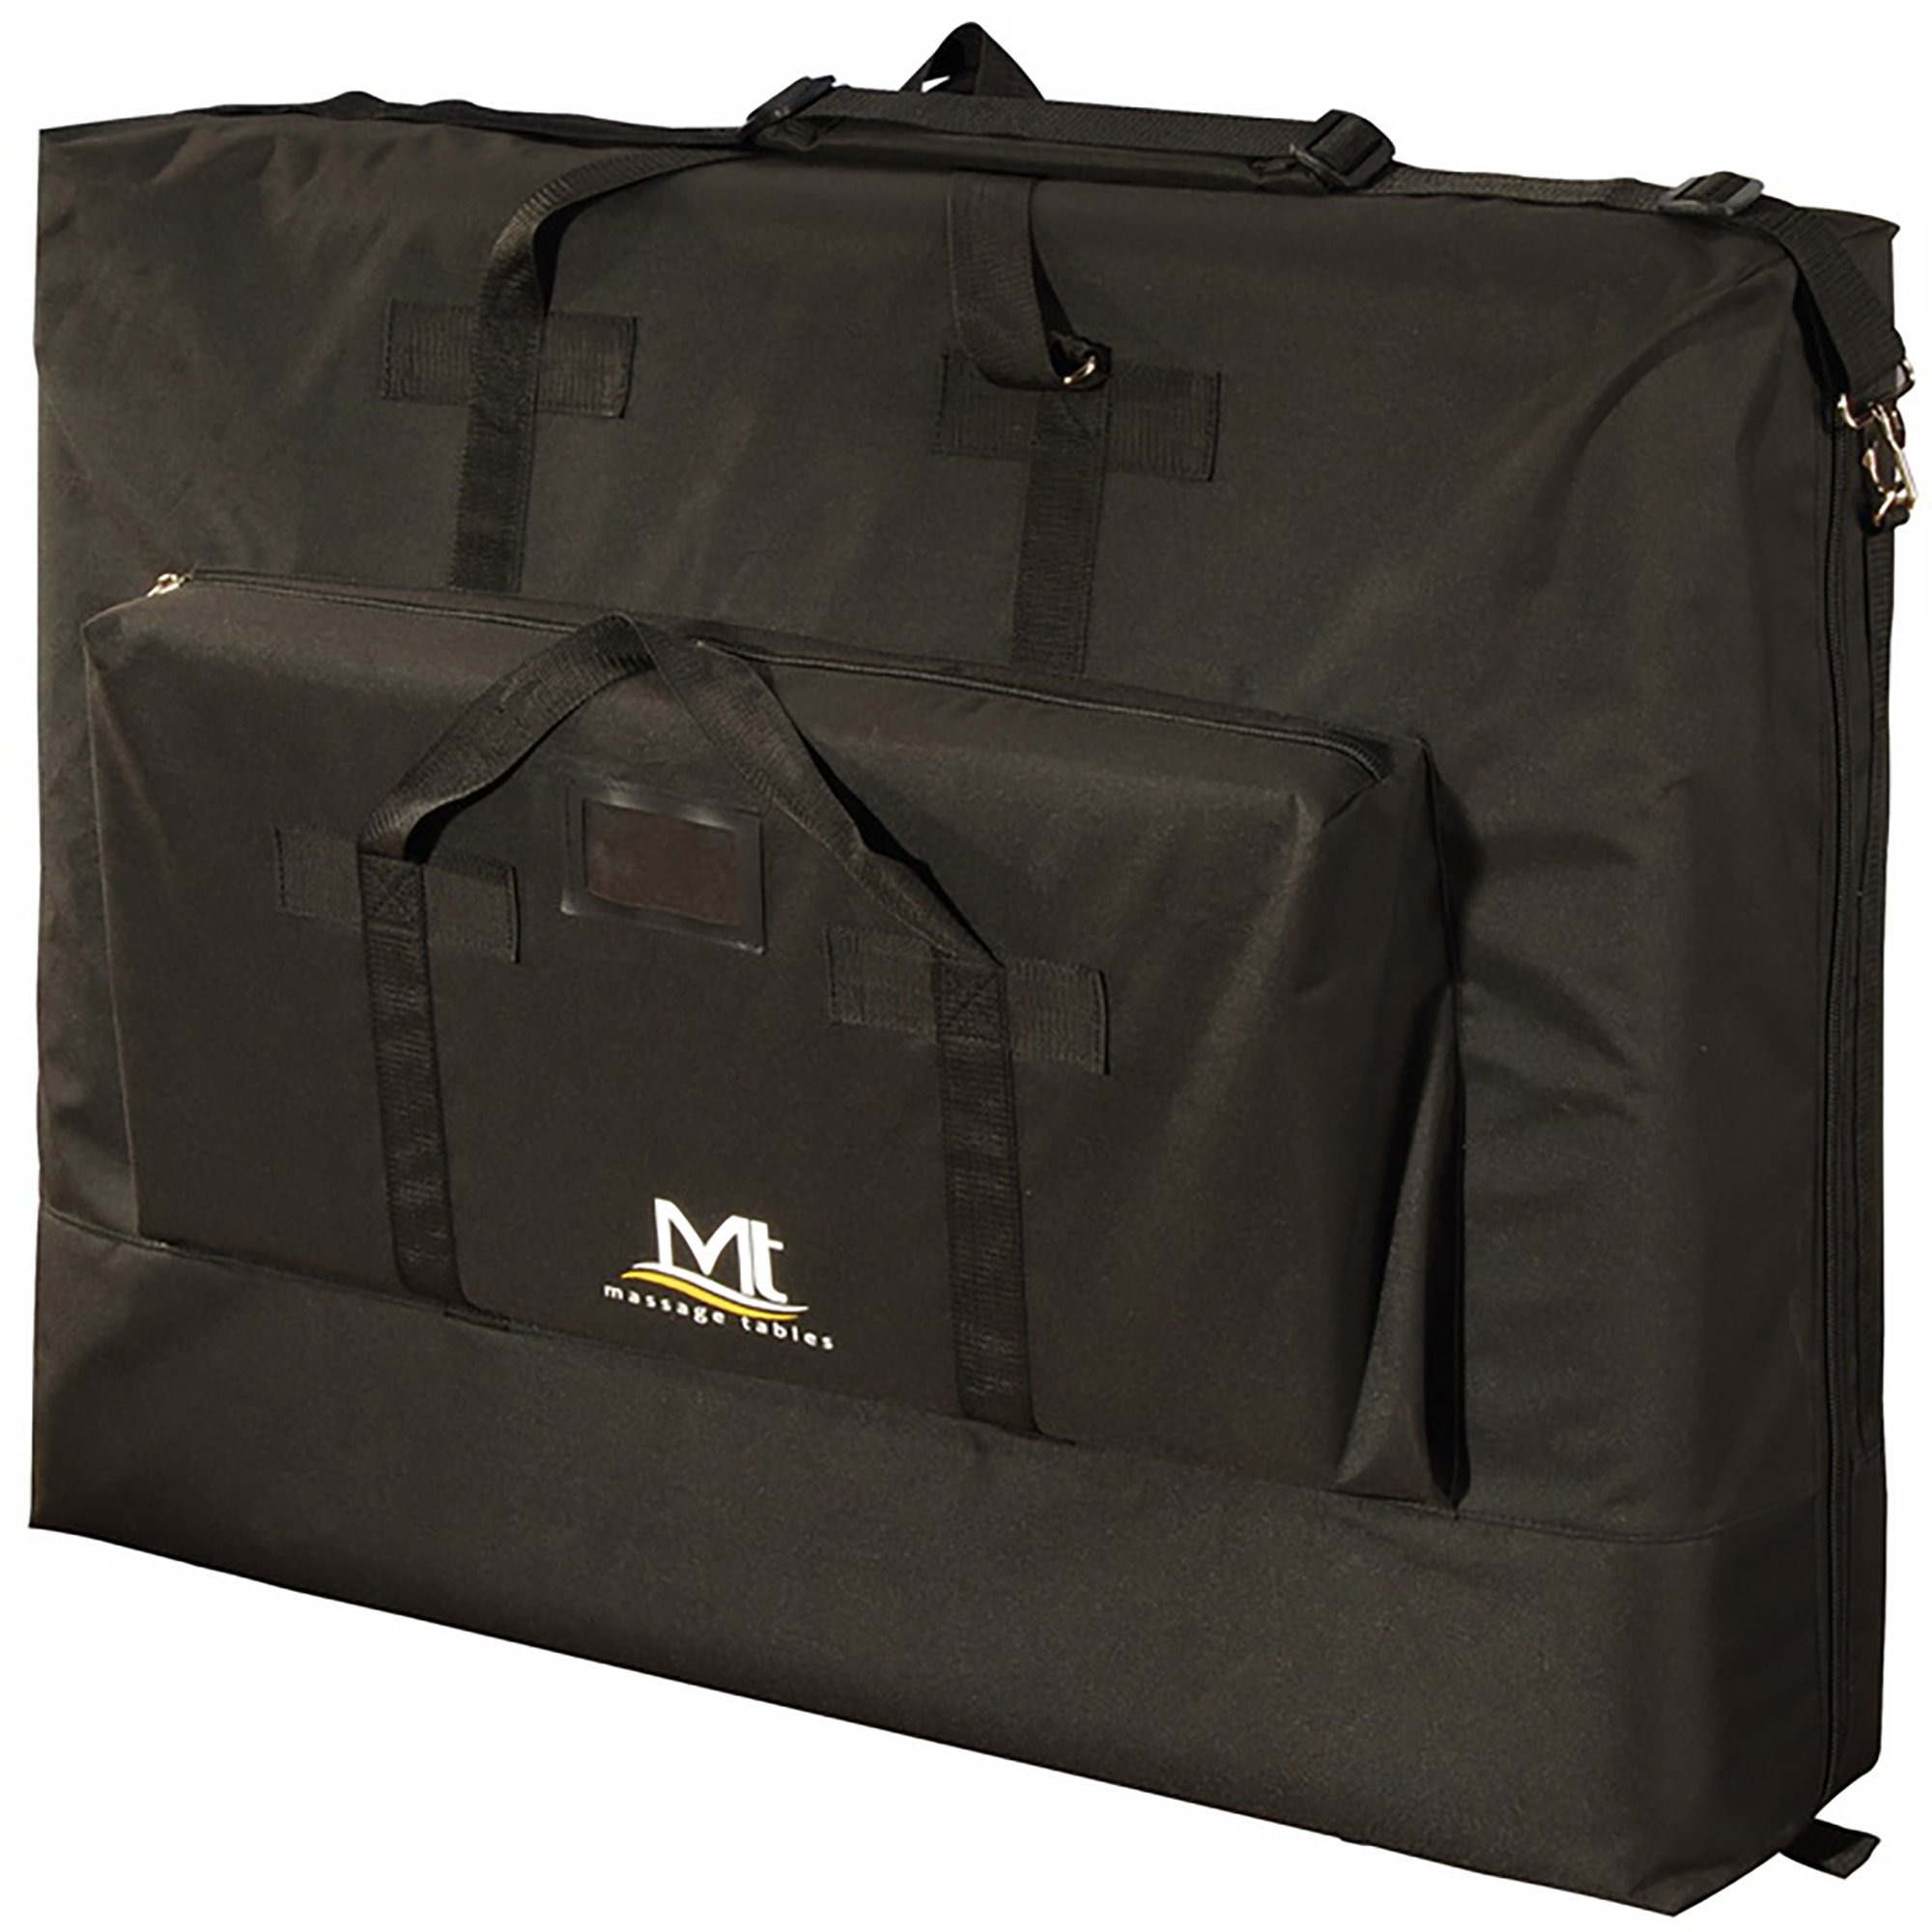 MT Massage Standard Carrying Case for 30'' Massage Table by Master Massage